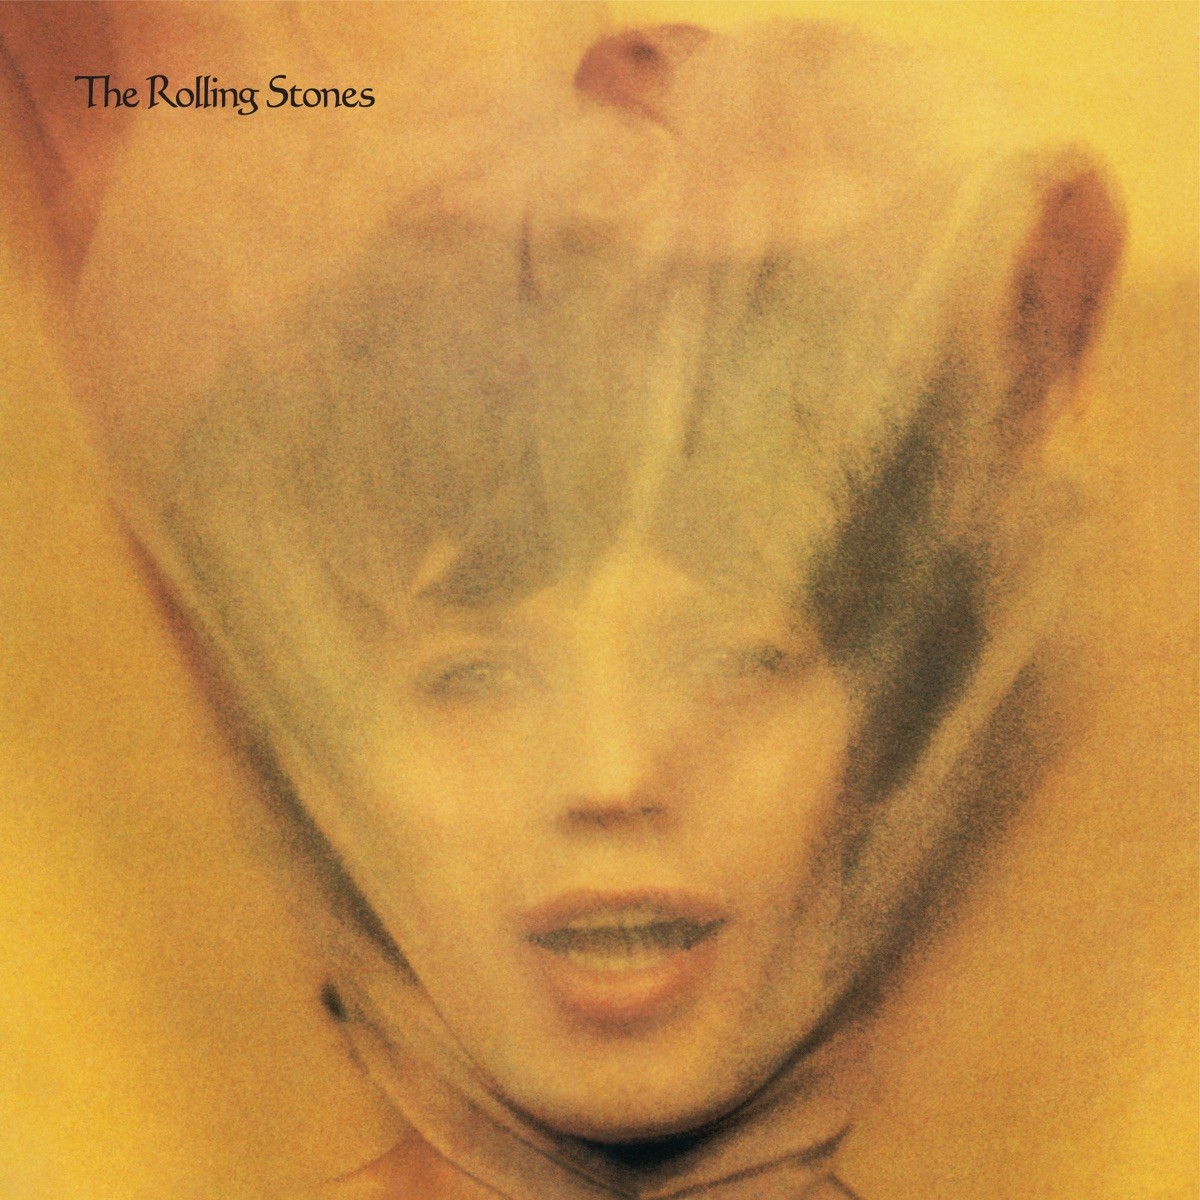 The Rolling Stones - Goats Head Soup (2020) CD - 060250893963